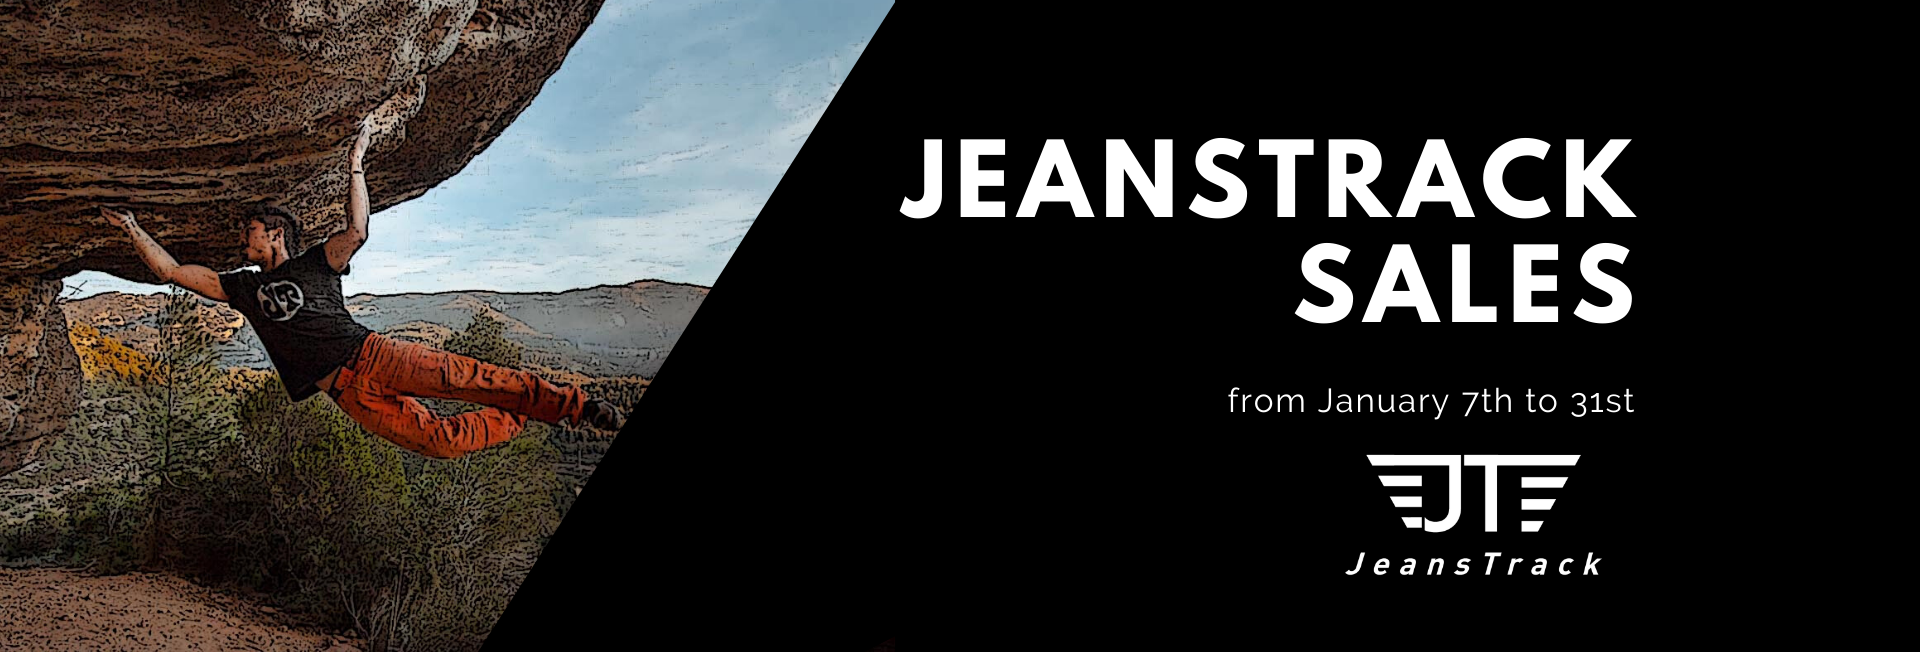 Sales JeansTrack. Offers in pants and T-shirts of MTB, Rough, Trekking, Mountain, Hiking, Trail Running, Urban Cycling and Climbing